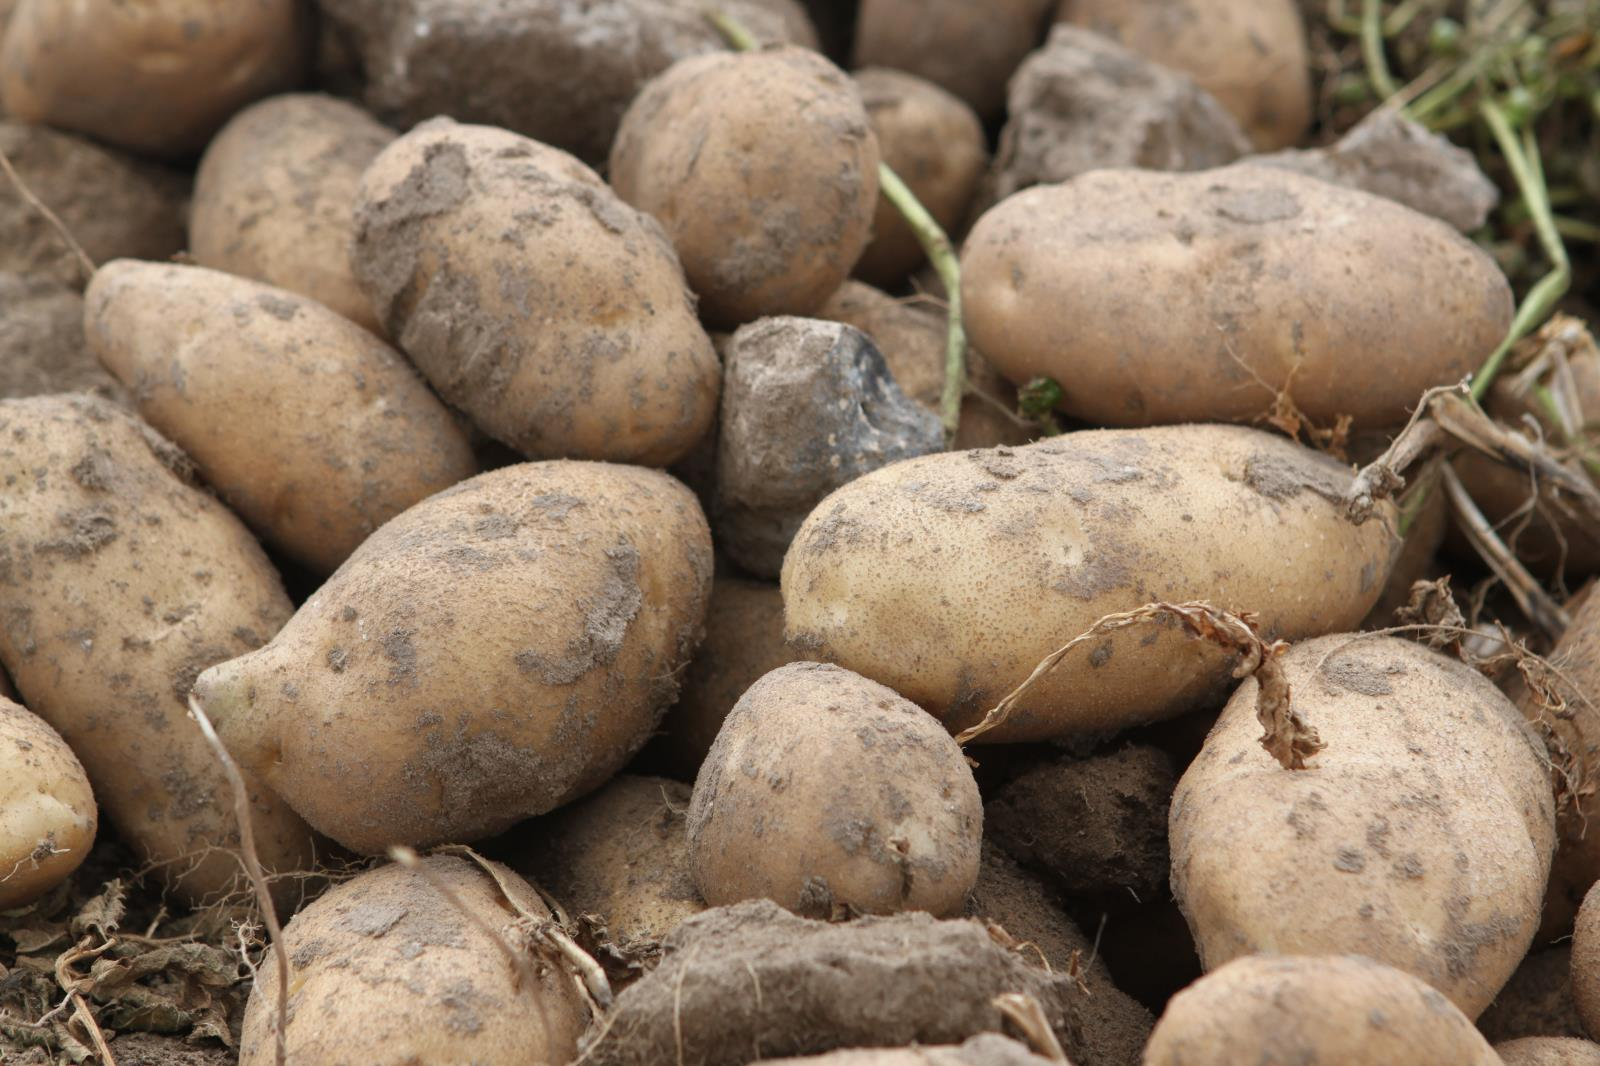 Idaho's potato industry faced severe harm during the beginning of the coronavirus-related shutdowns but major efforts undertaken by the state and national groups that represent spud farmers have helped them weather the storm.